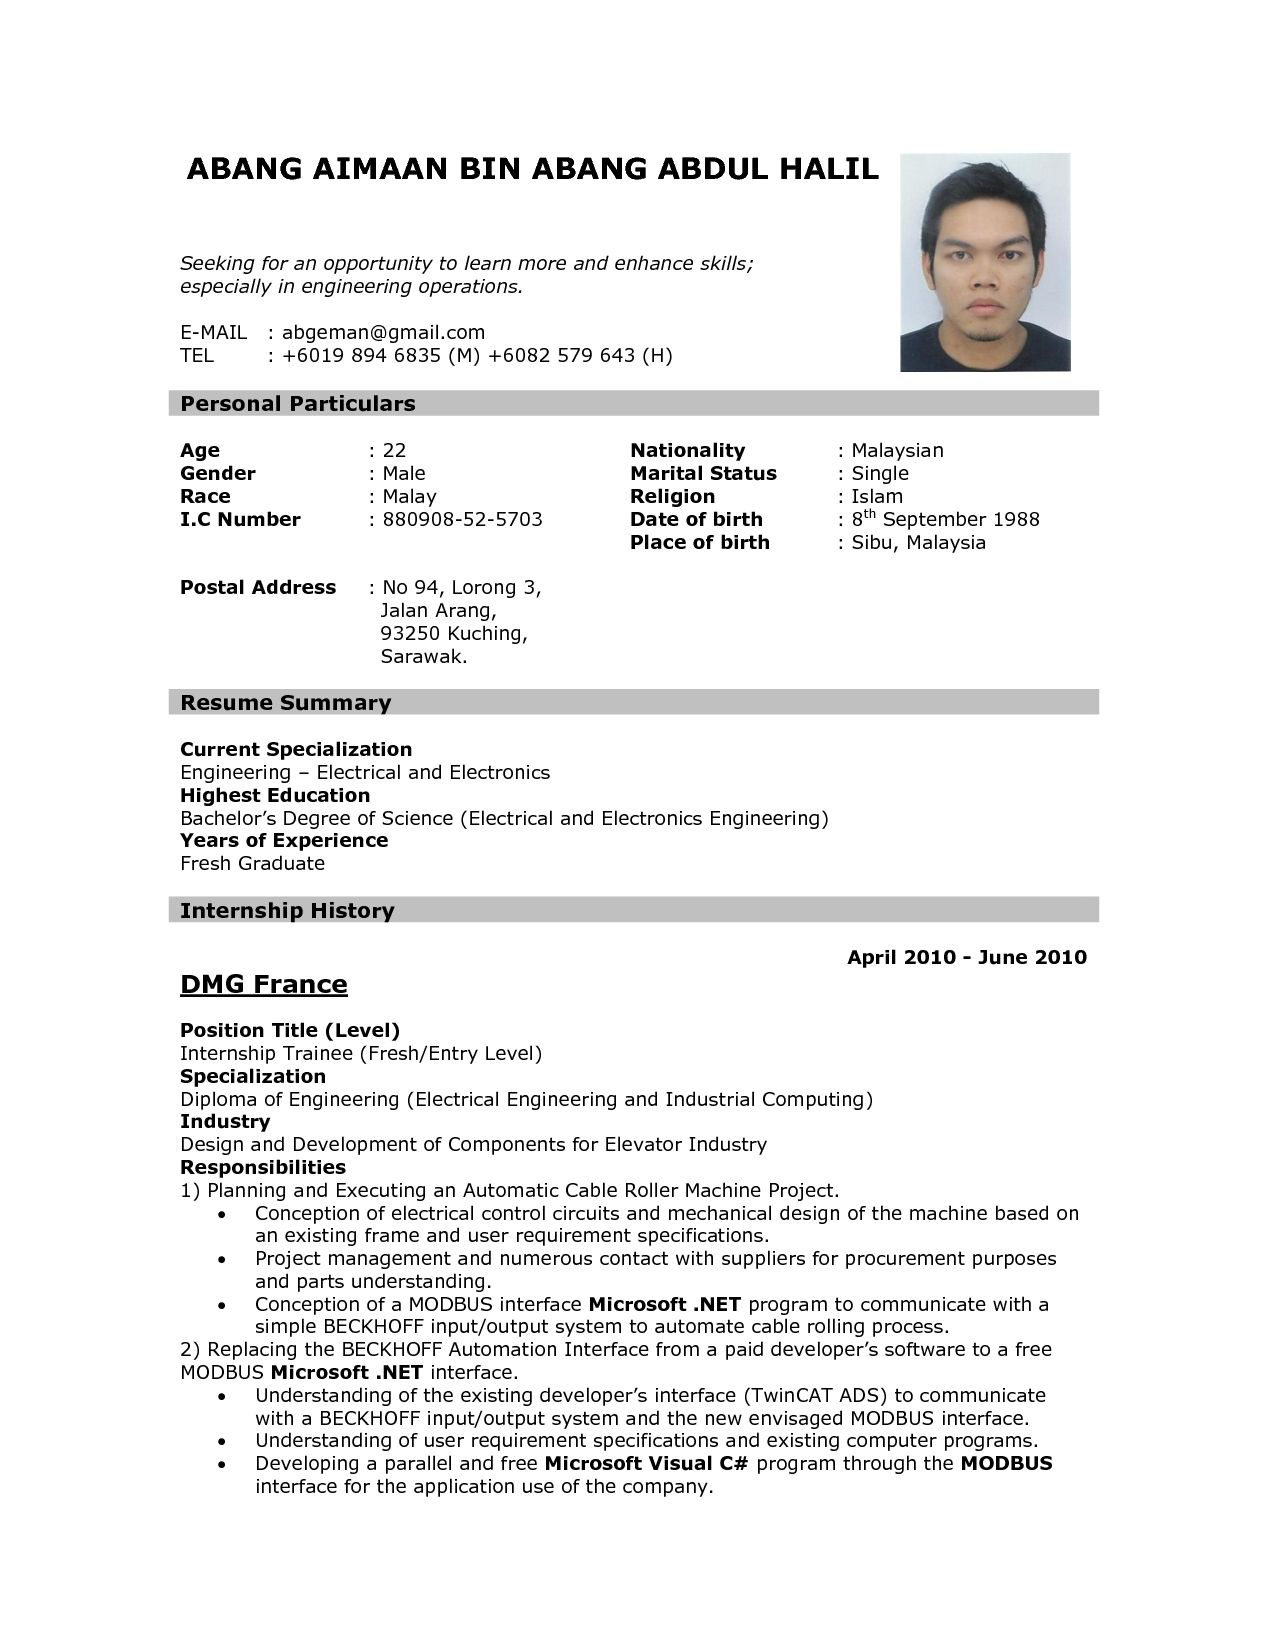 Resume Format Application Format Of Resume For Job Application To Download Data